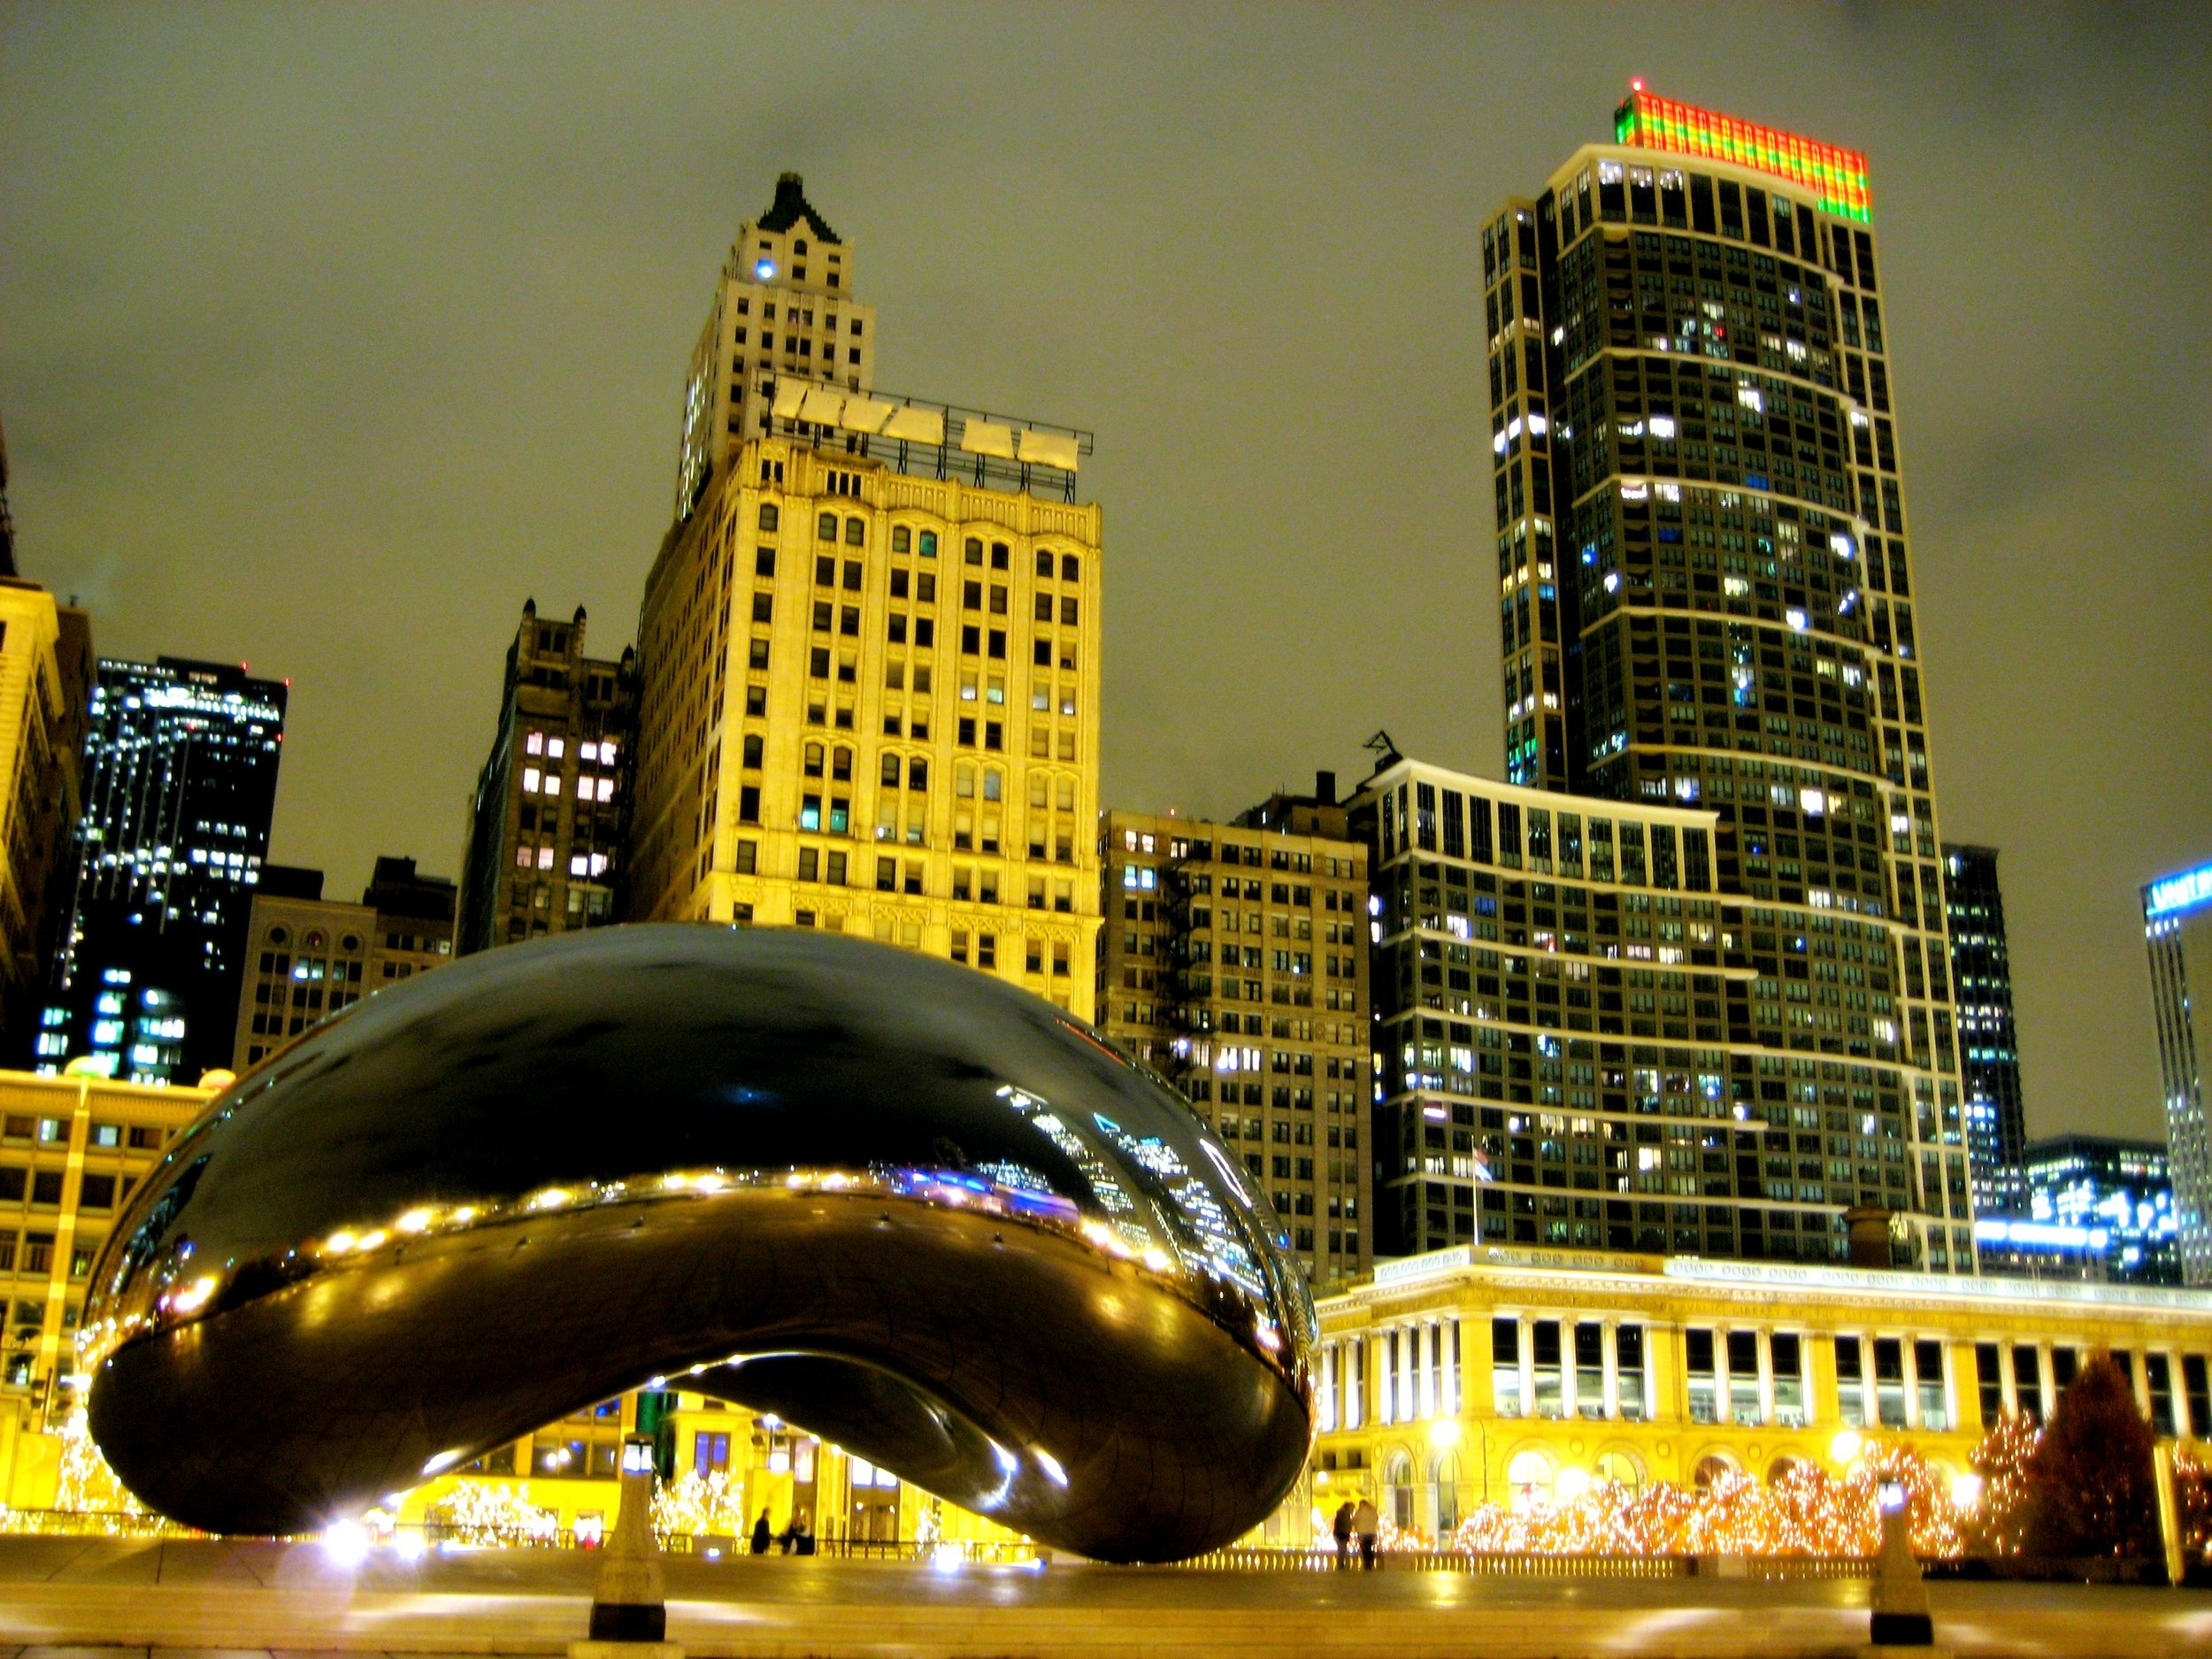 Cloud_Gate_at_Night_(Nov_2007).JPG